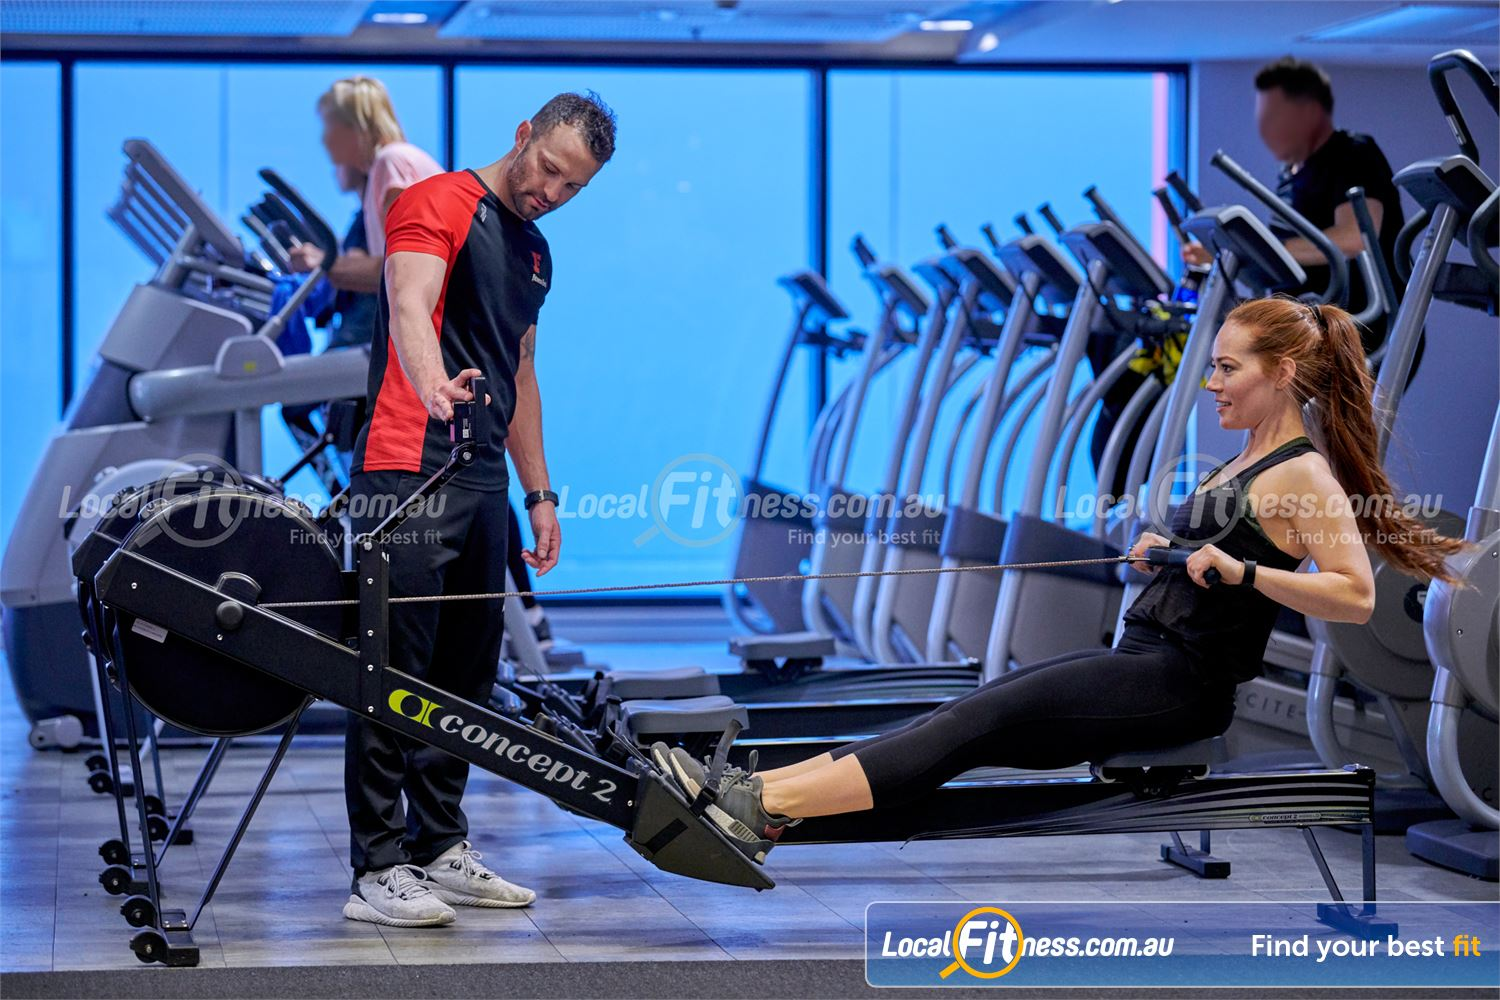 Fitness First Victoria Gardens Near Richmond North Our Richmond personal trainers can give you a HIIT rowing workout.